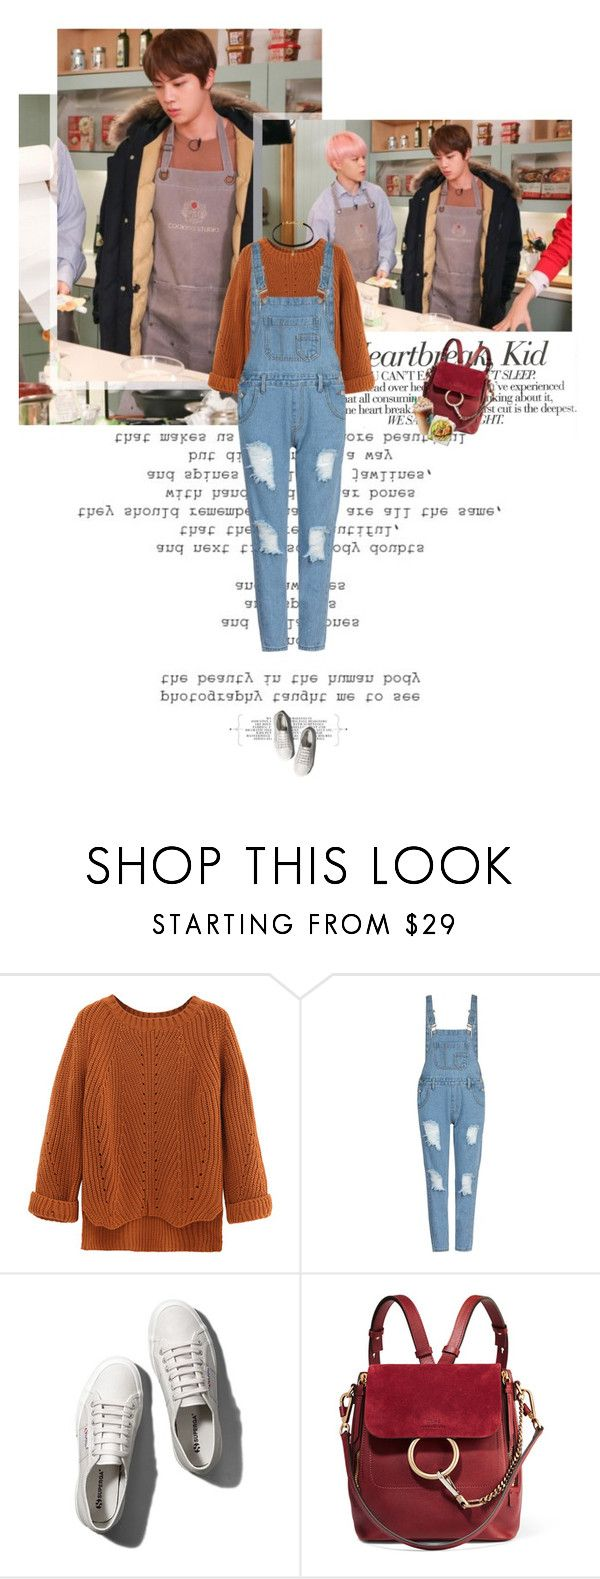 """Untitled 3840..."" by thplacebo ❤ liked on Polyvore featuring Karl Lagerfeld, WithChic, Abercrombie & Fitch, Chloé and Vanessa Mooney"